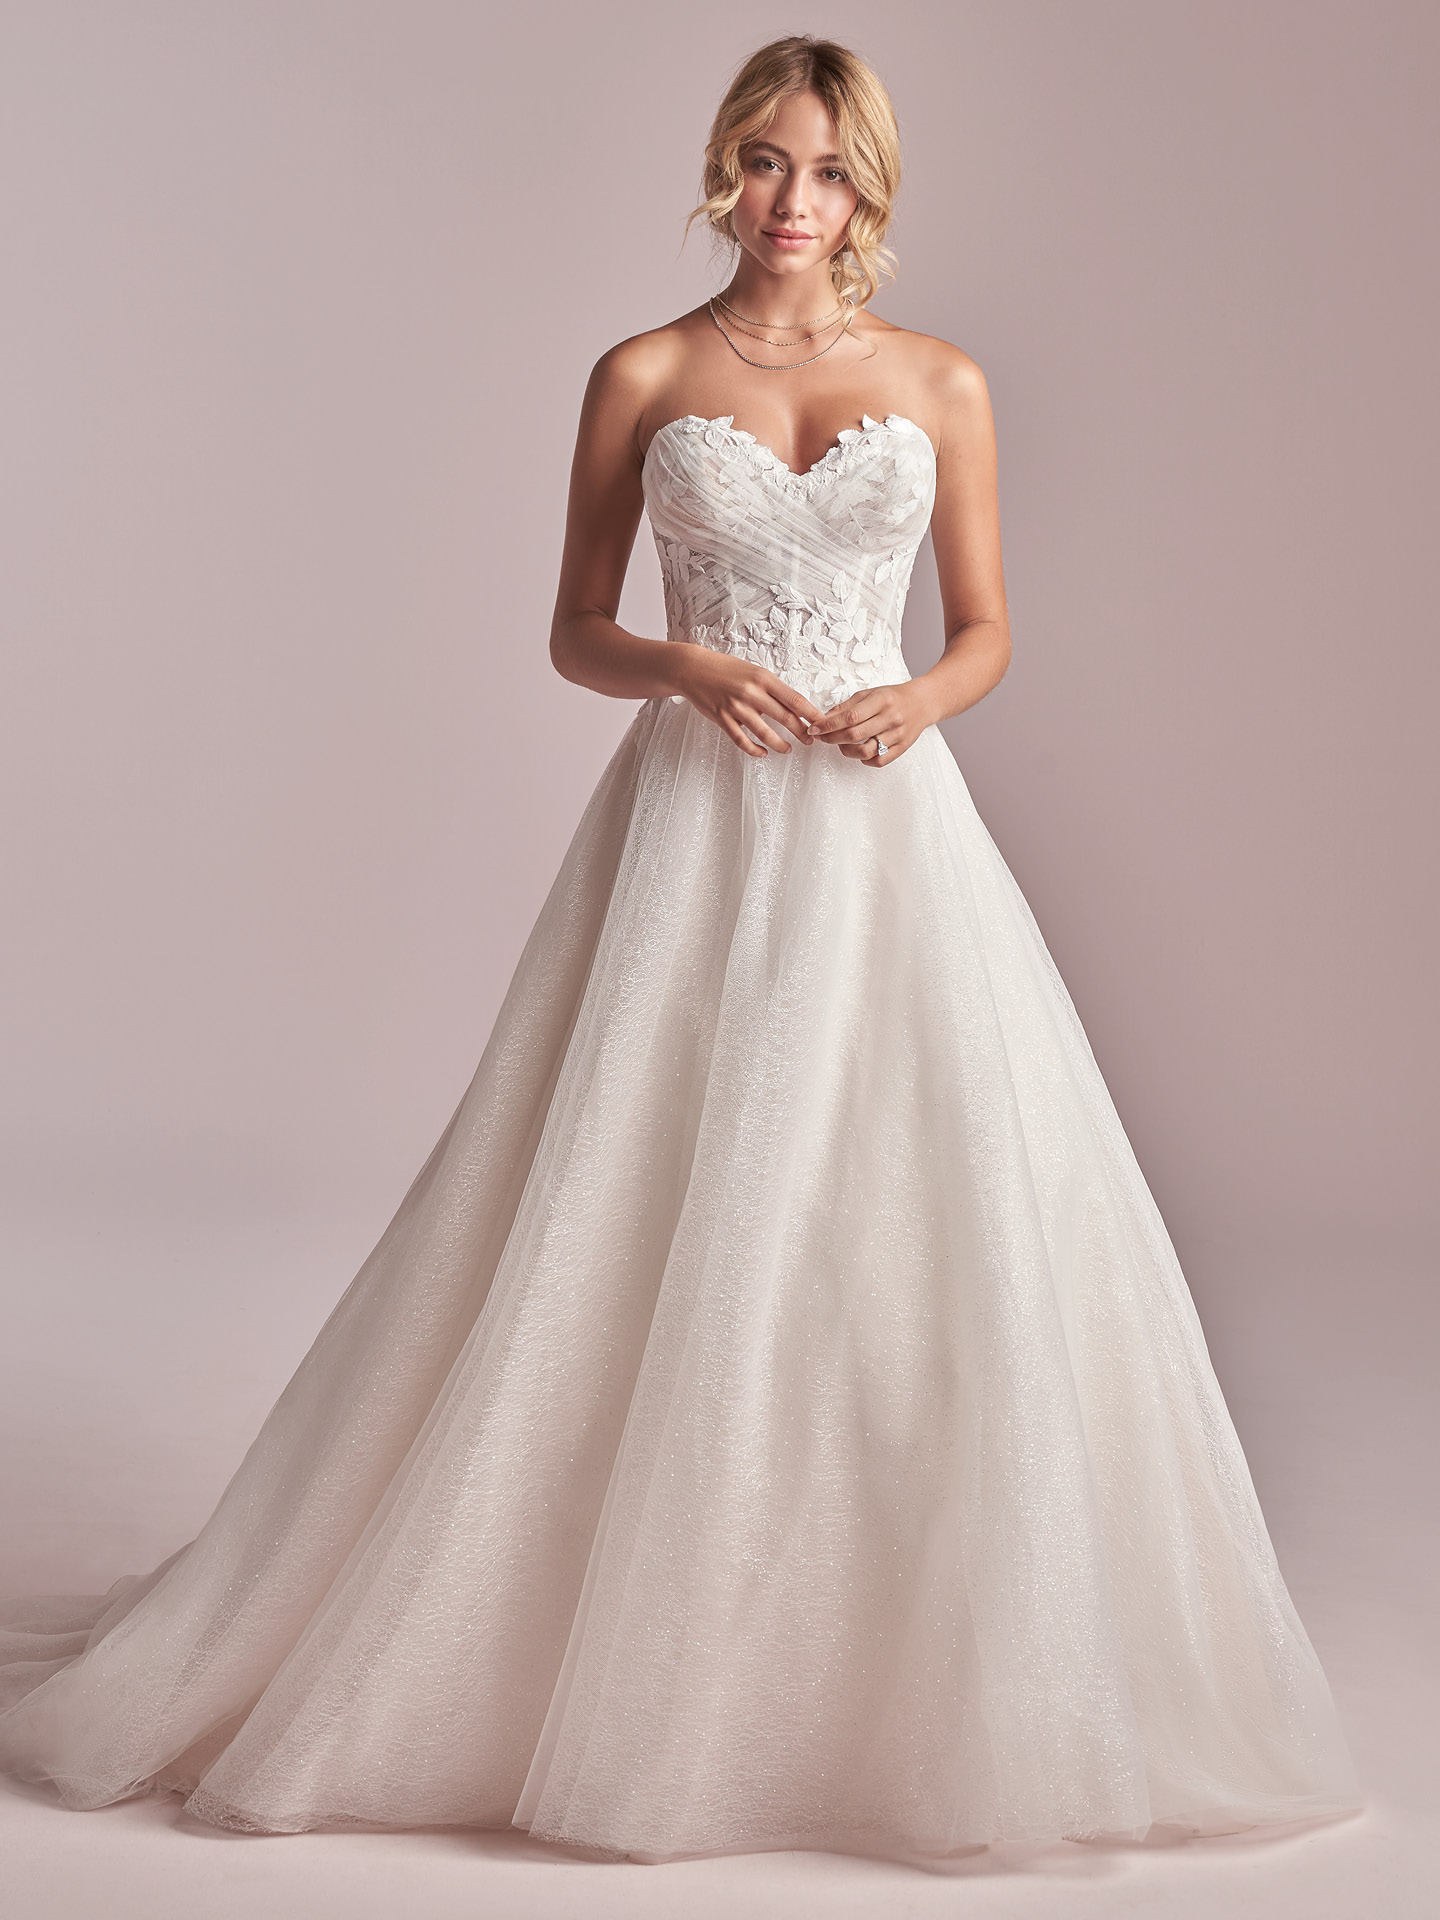 Maggie Sottero/ R.I.: REMY, All Ivory: 38